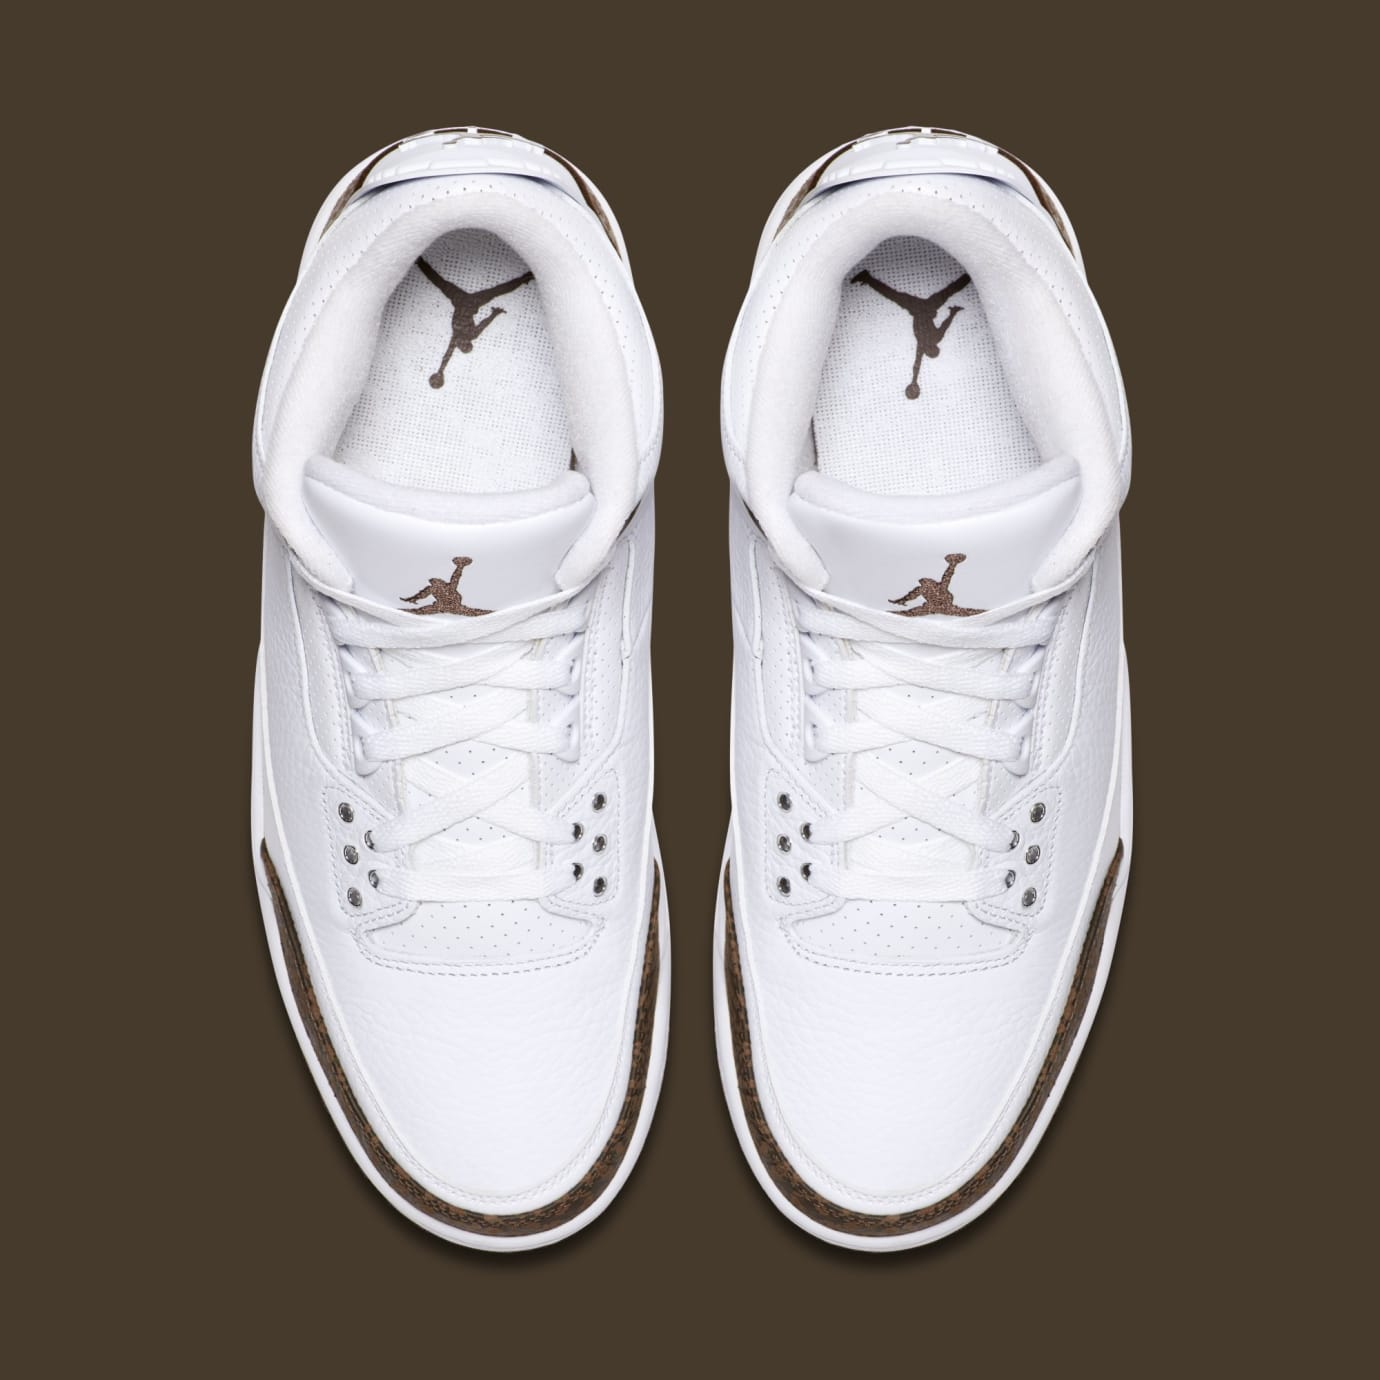 89a673ebf74 Image via Nike Air Jordan 3  Mocha  White Chrome-Dark Mocha 136064-122 (